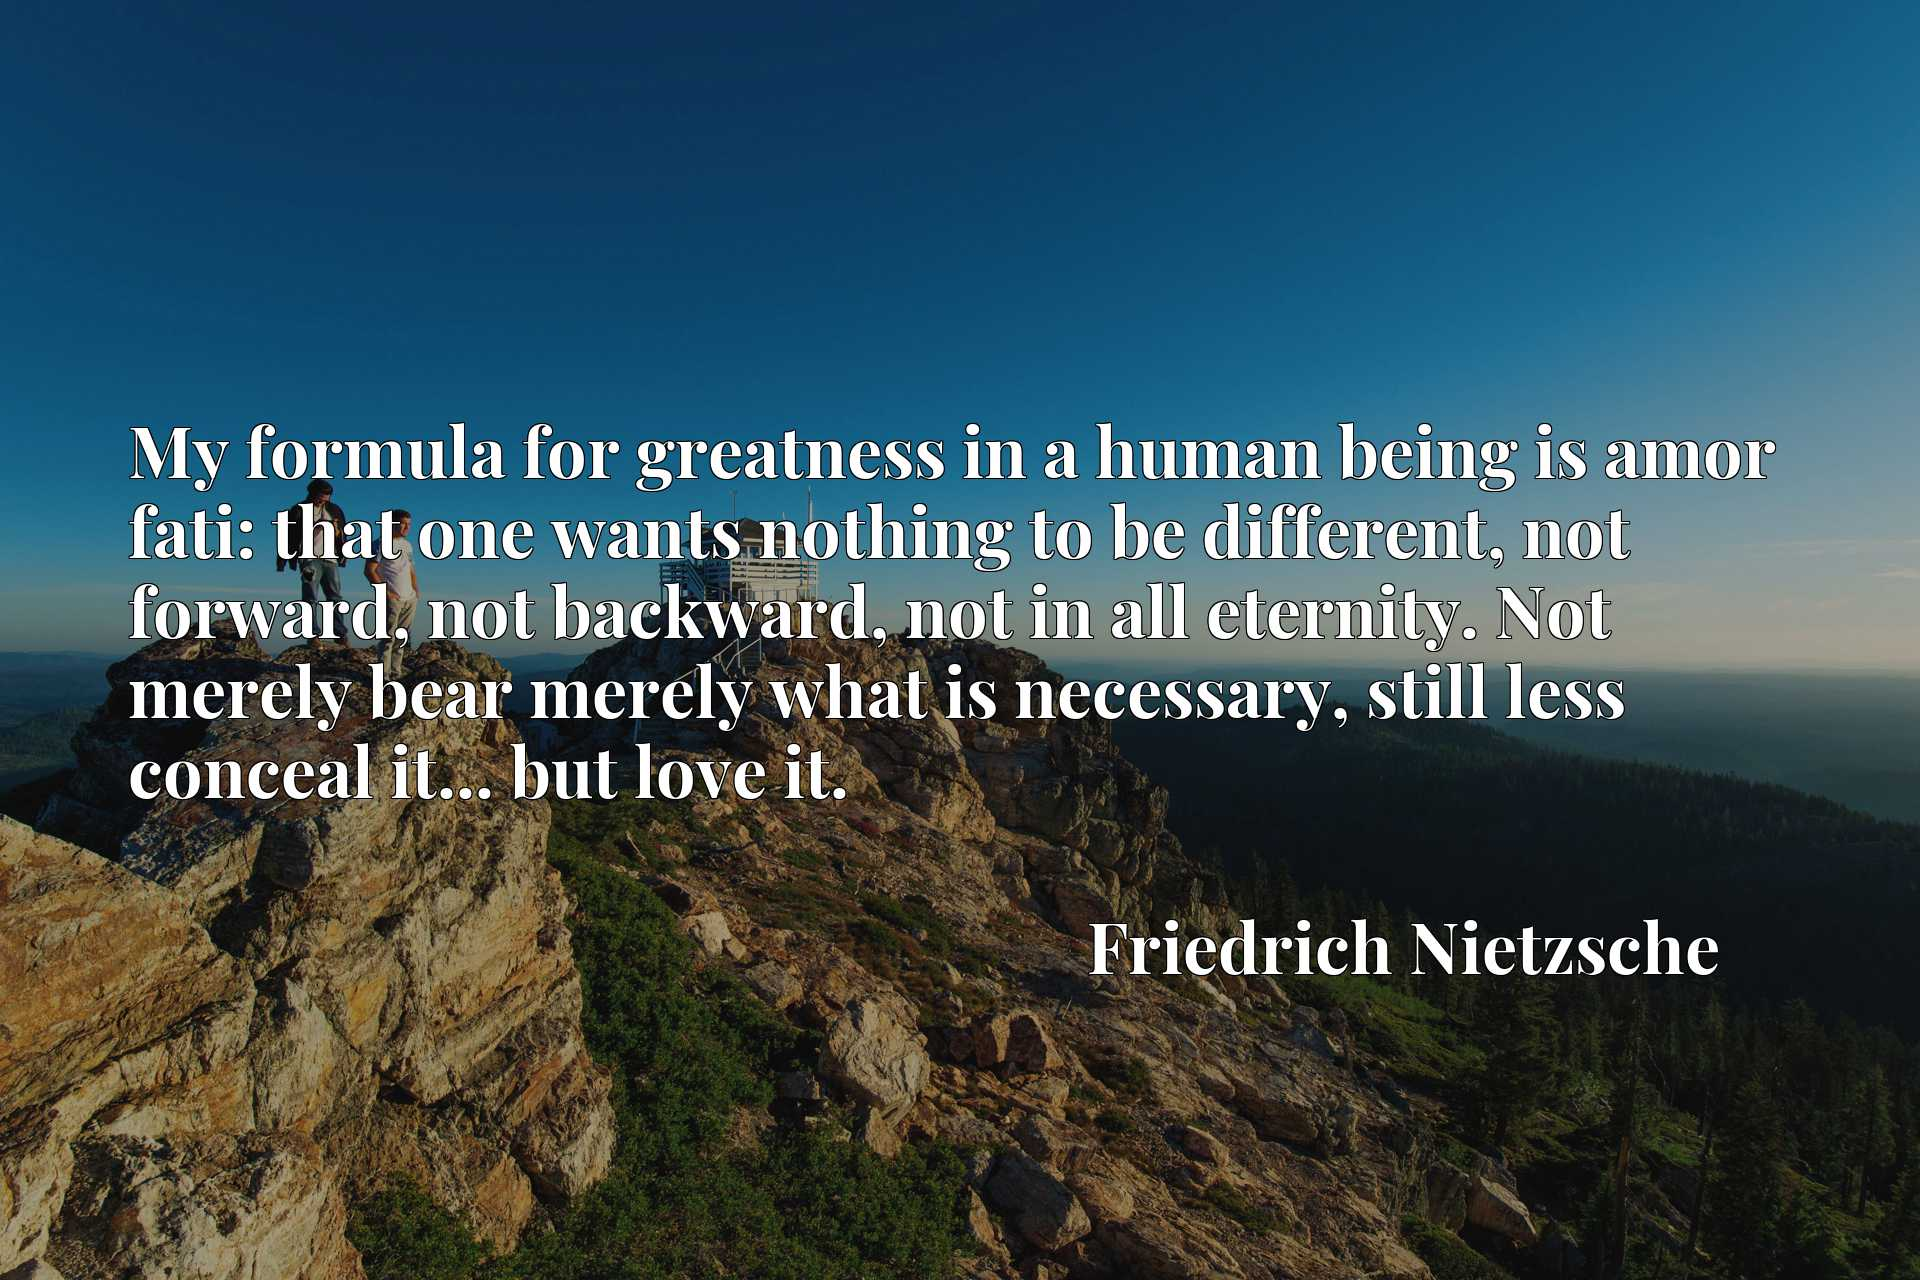 My formula for greatness in a human being is amor fati: that one wants nothing to be different, not forward, not backward, not in all eternity. Not merely bear merely what is necessary, still less conceal it... but love it.